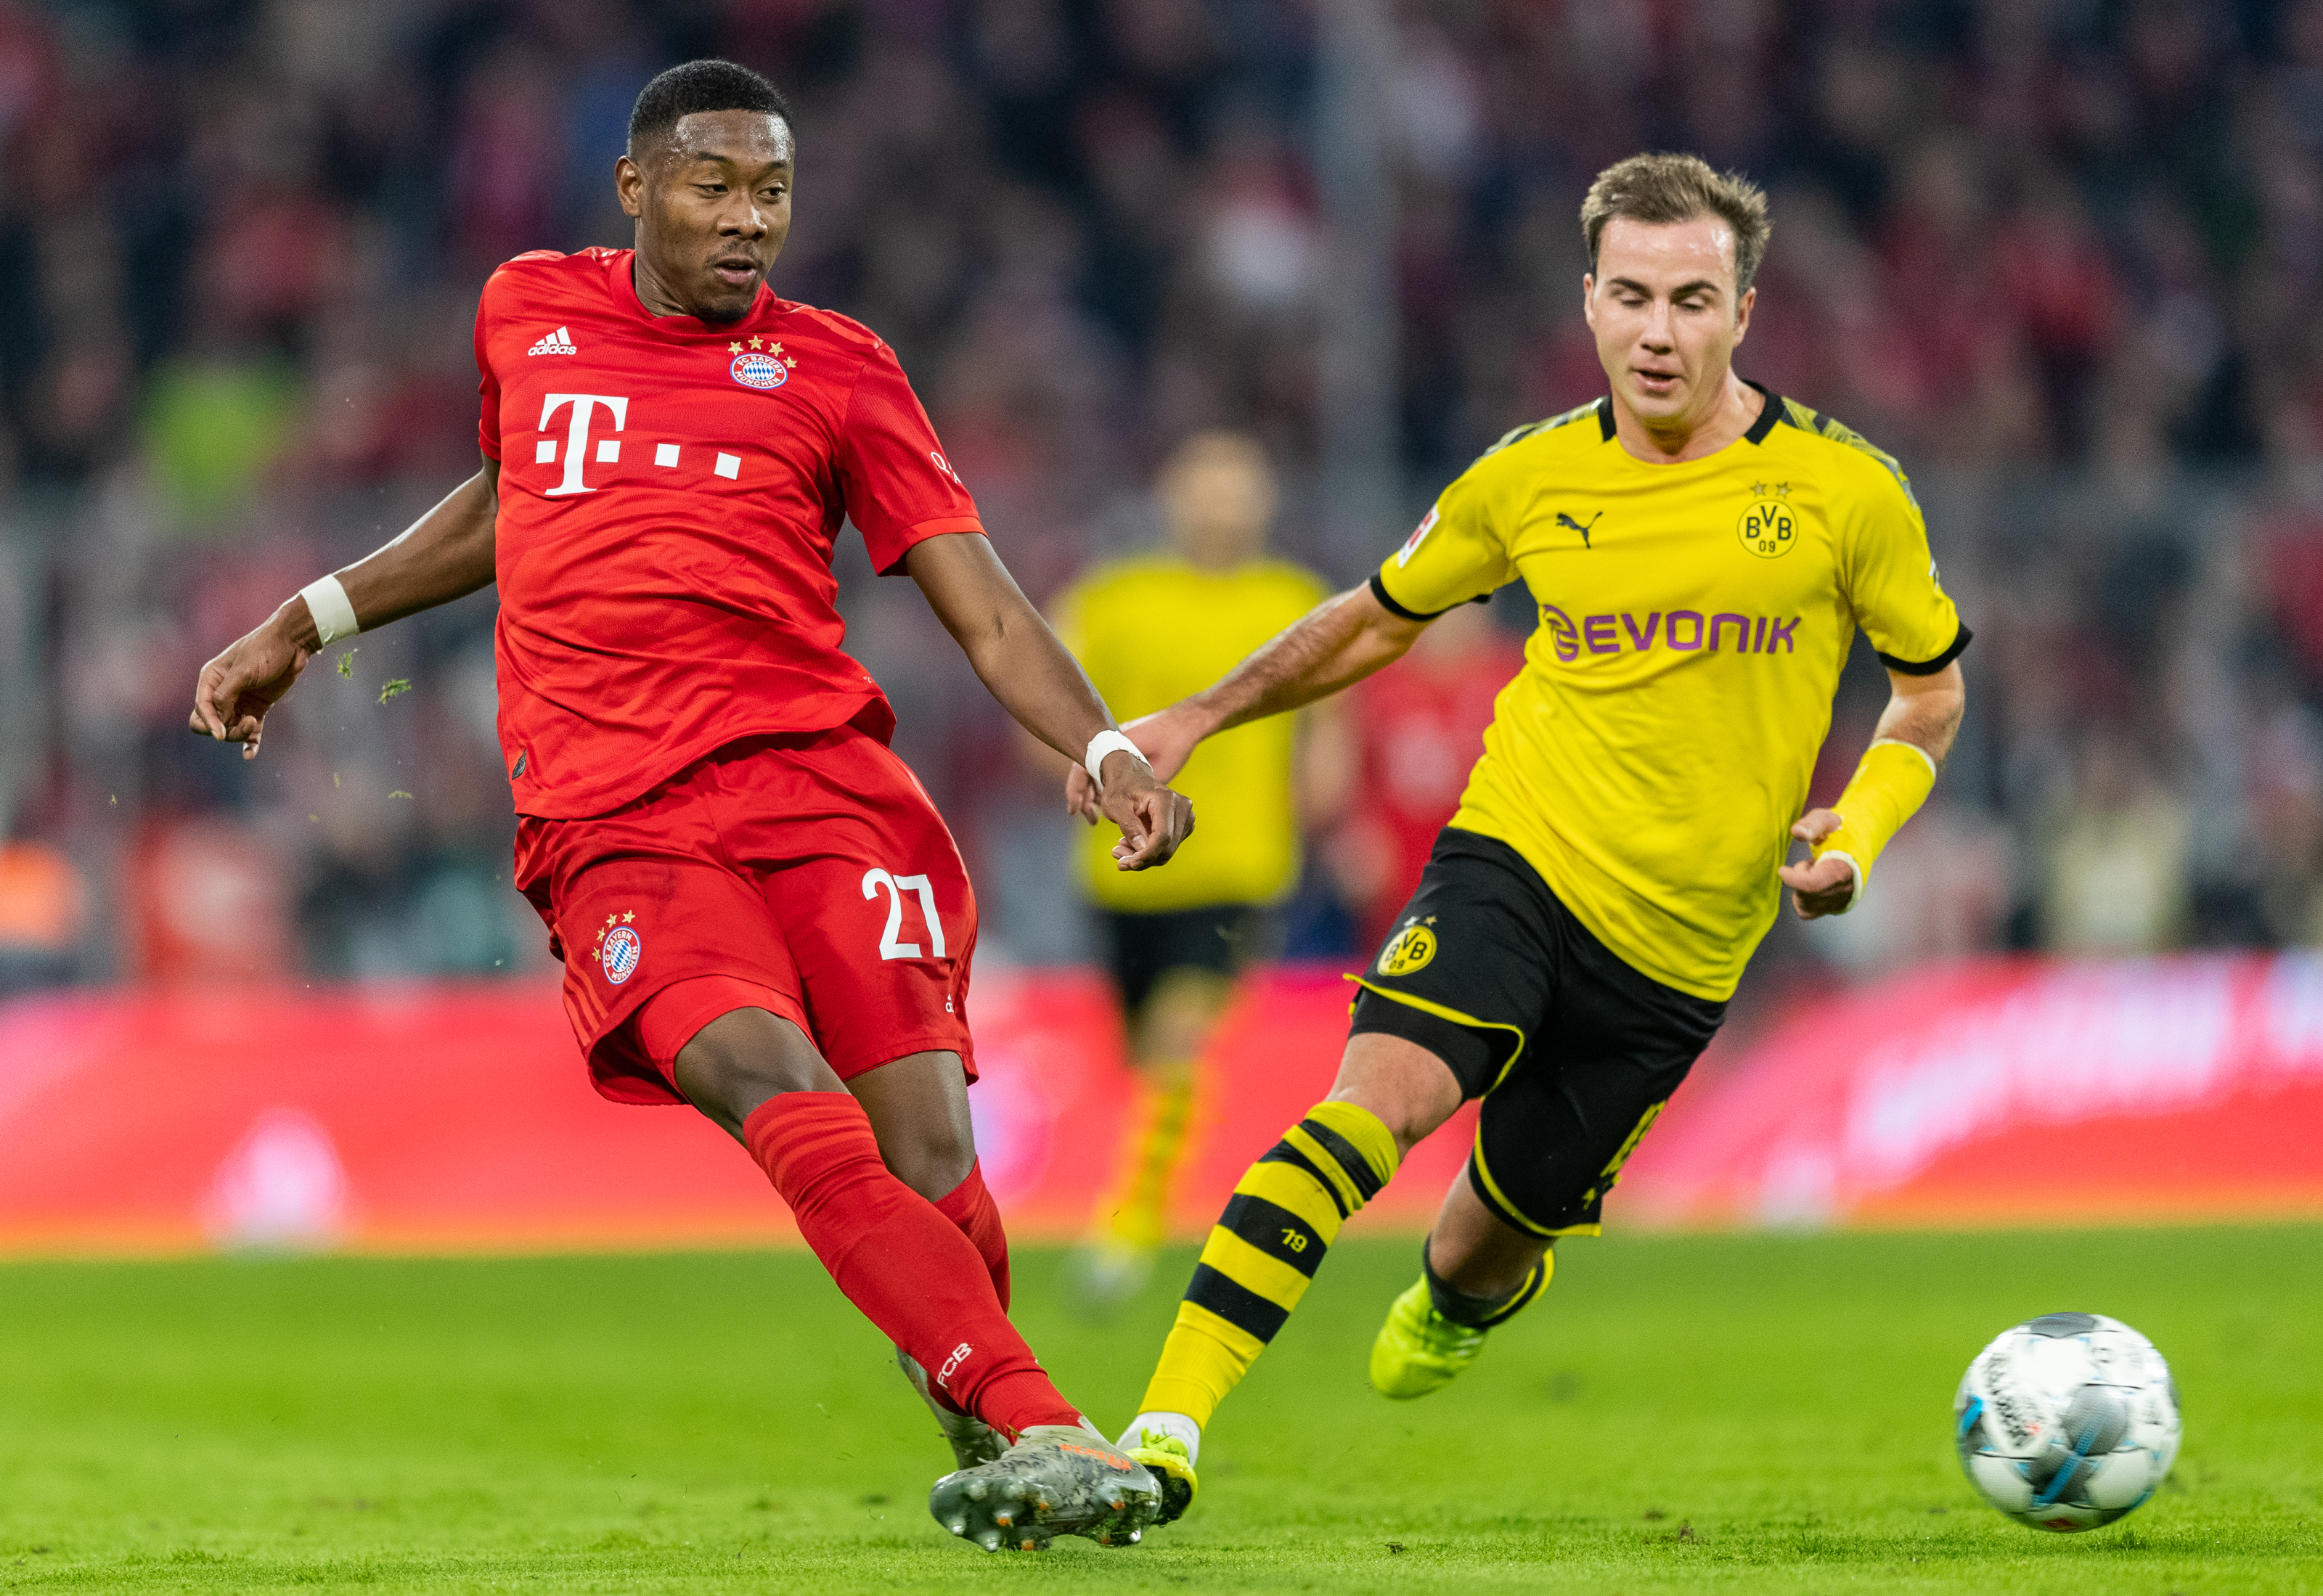 Bayern Munich: Mario Gotze emerges as shock transfer target